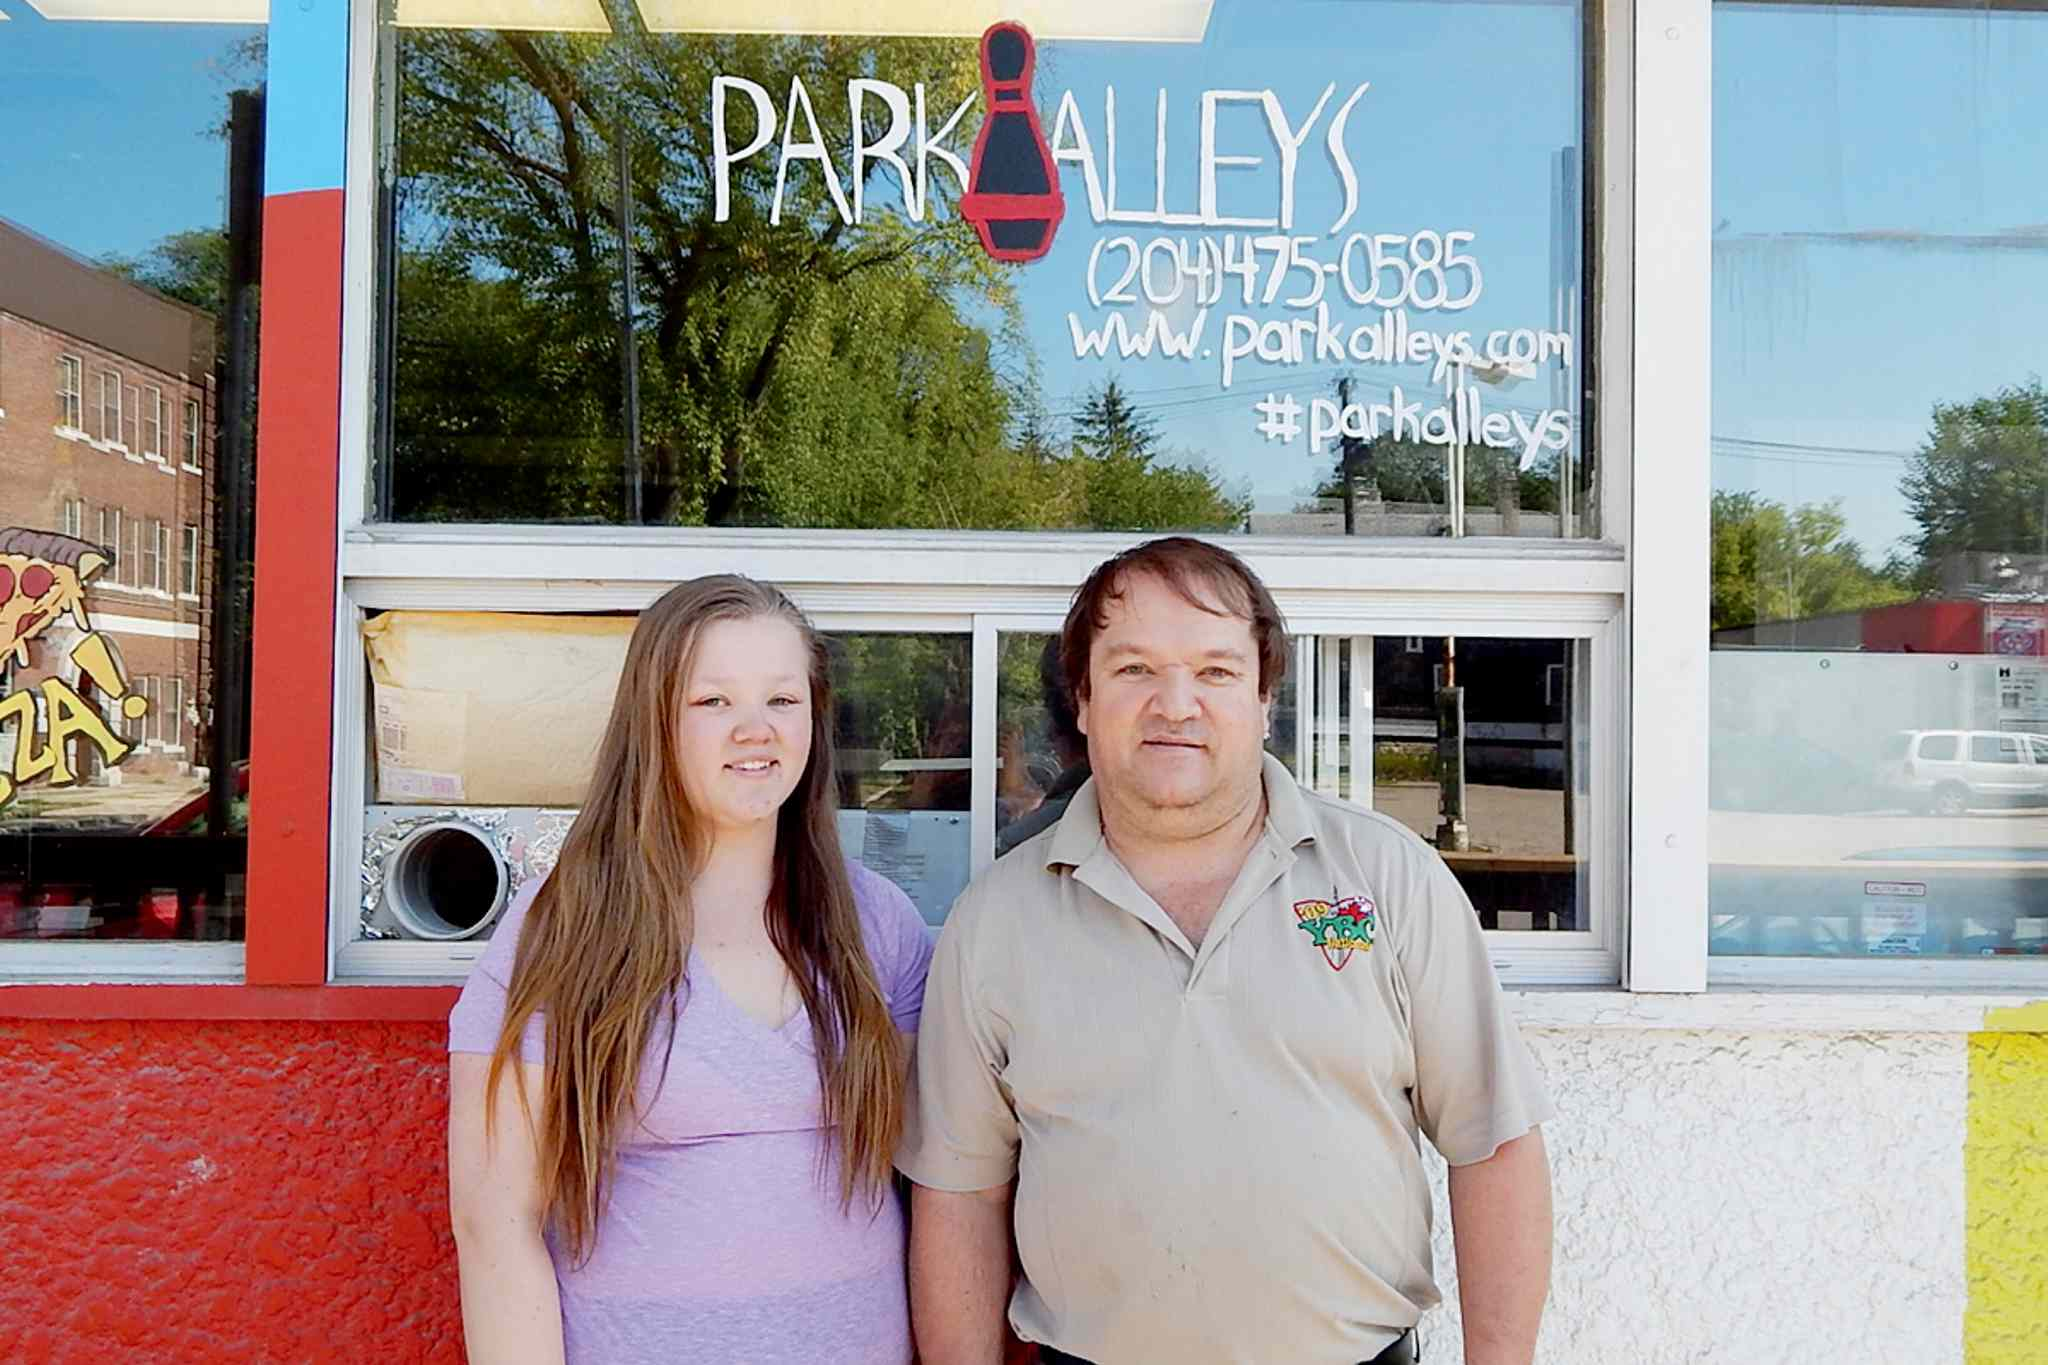 Park Alleys owner Mike Devenney, right, stands with his daughter Jennifer outside the newly-renovated Park Alleys bowling centre at 730 Osborne St.